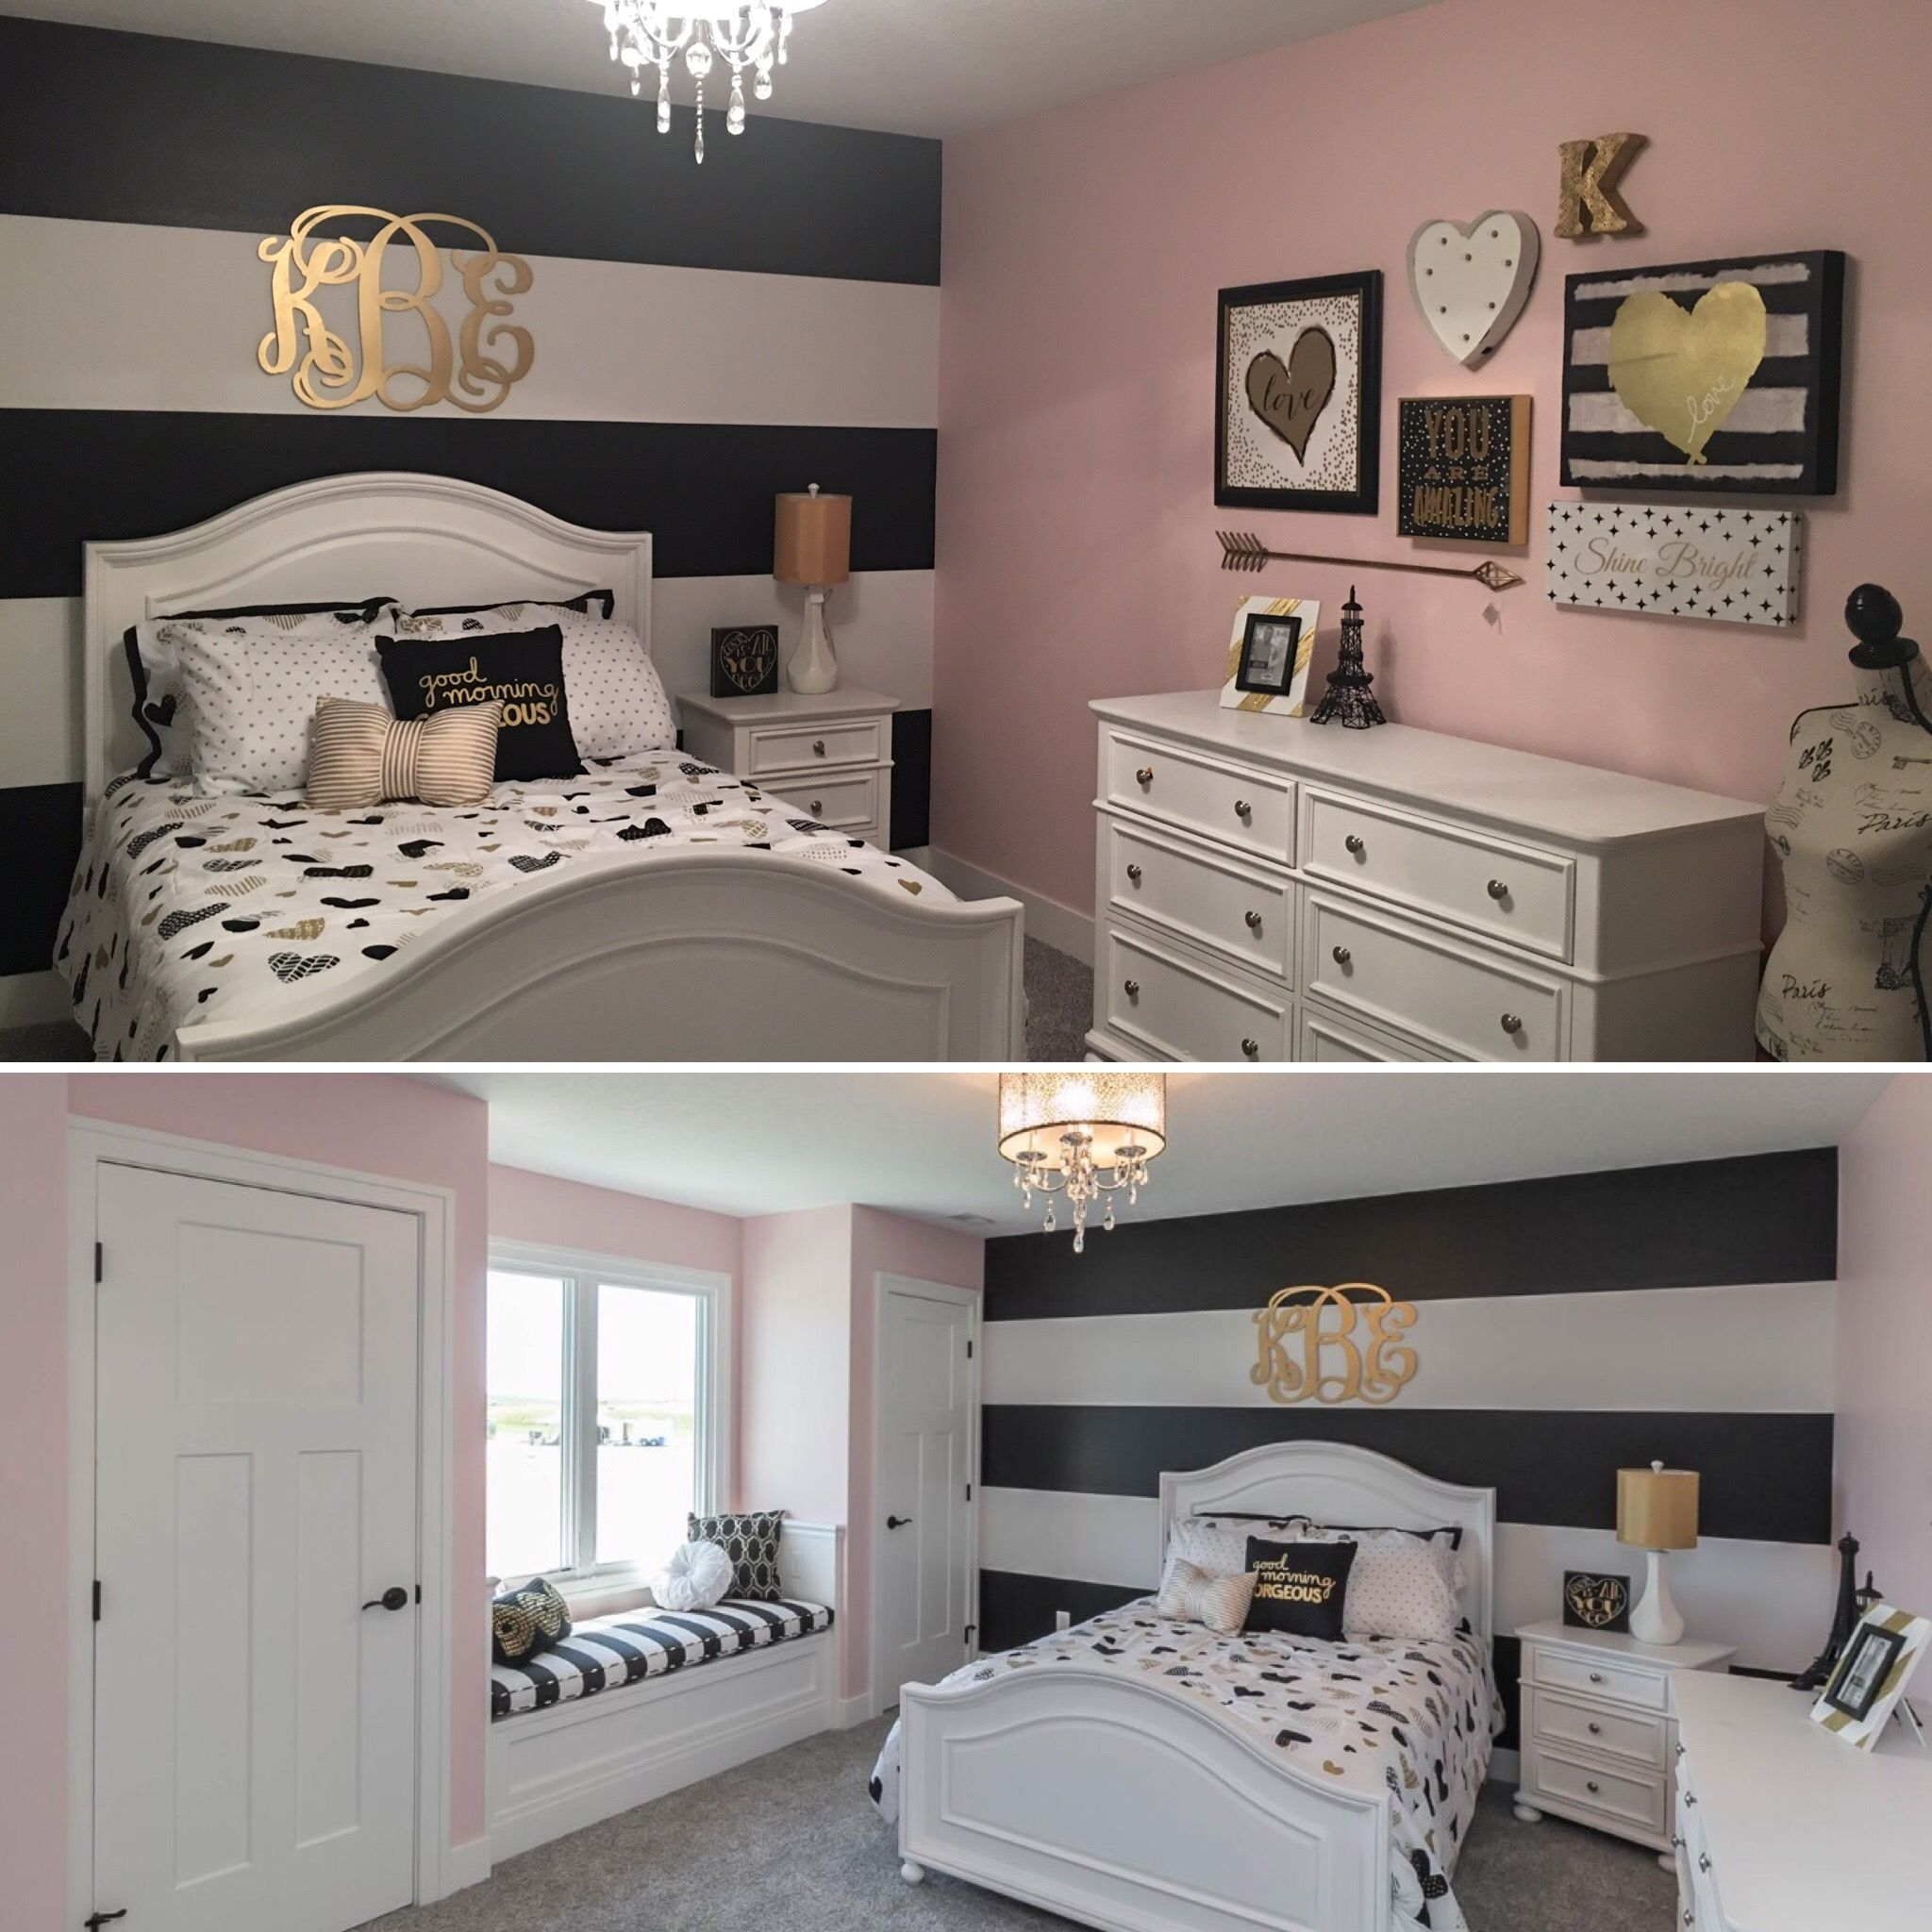 Girls room with black and gold accents all very Black and white bedroom decor